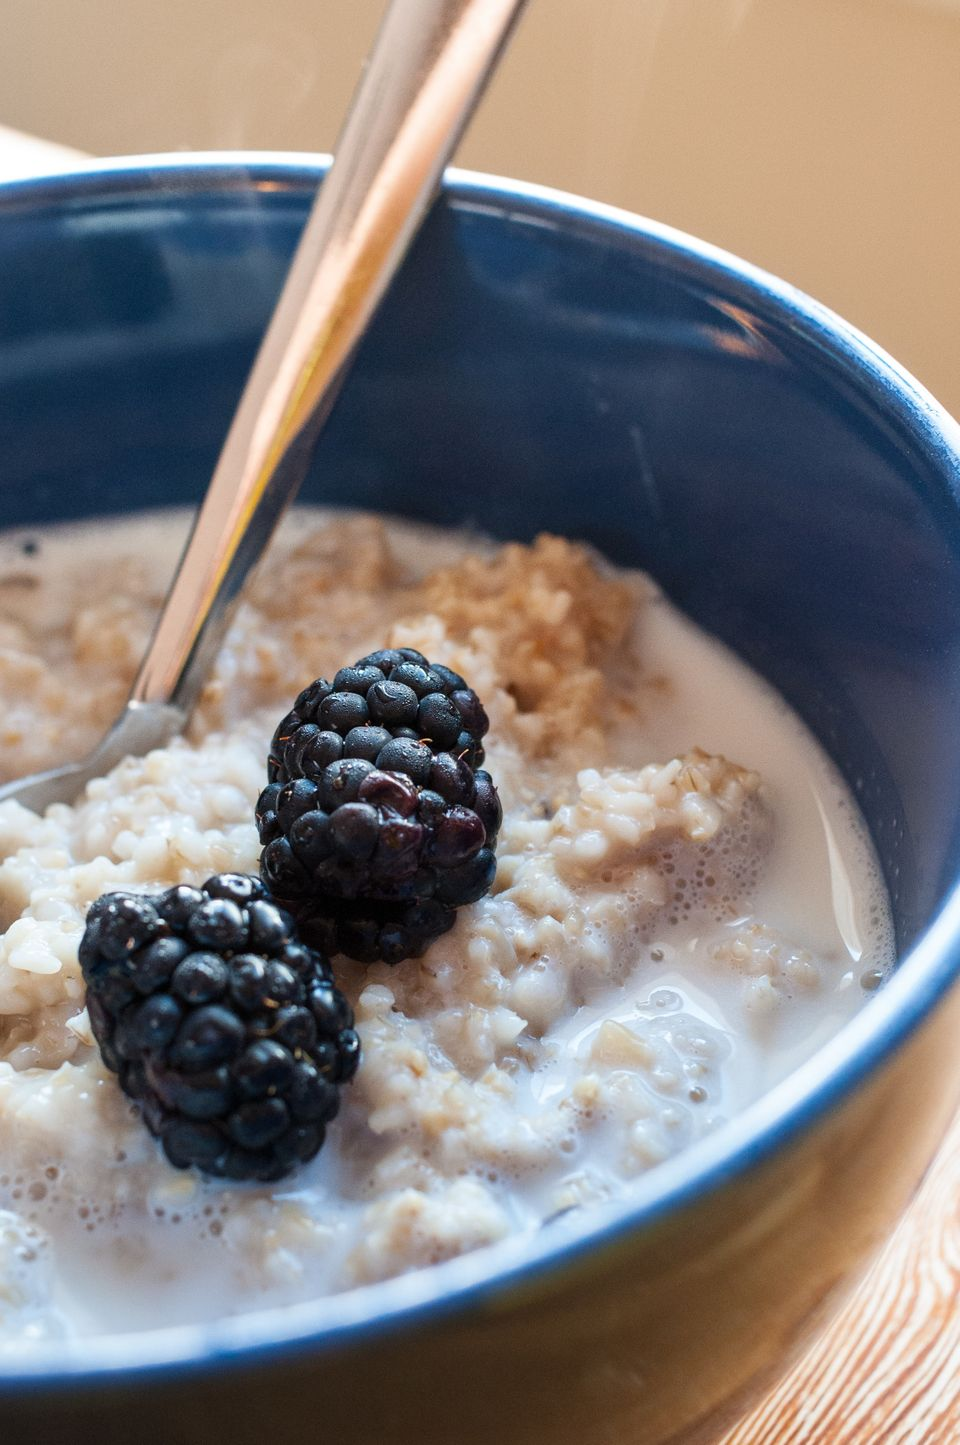 """Oatmeal is a good source of soluble fiber and contains <a href=""""http://altmedicine.about.com/od/herbsupplementguide/a/Beta-Gl"""